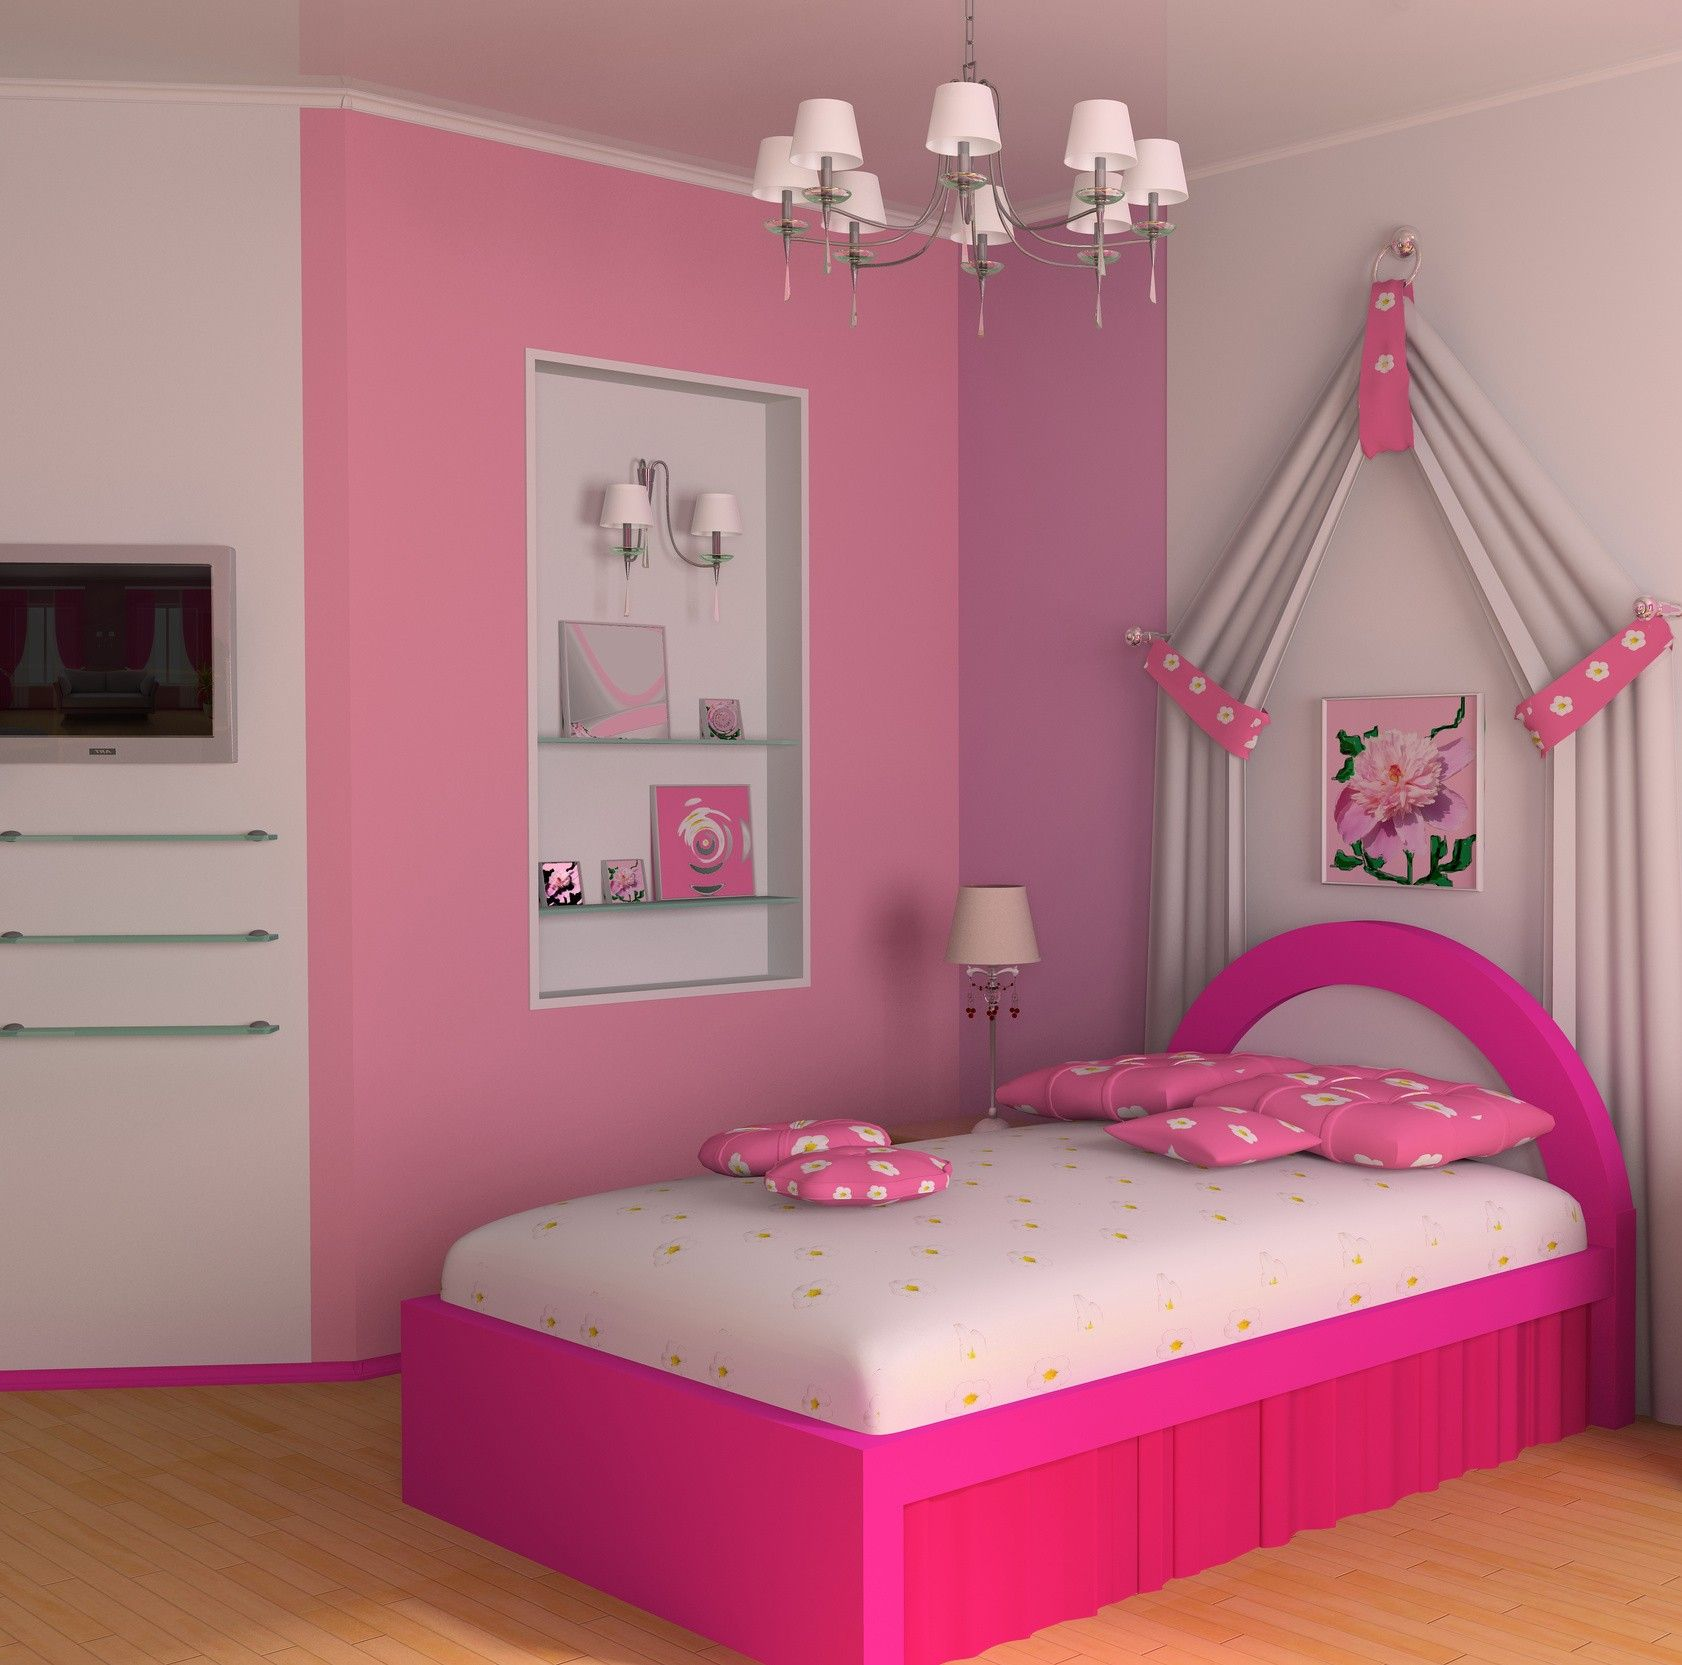 Bedroom color design for girls - Cute Decorating Ideas For Little Girls Door Ideas With Impresive Furnitures Luxury Girl Bedroom